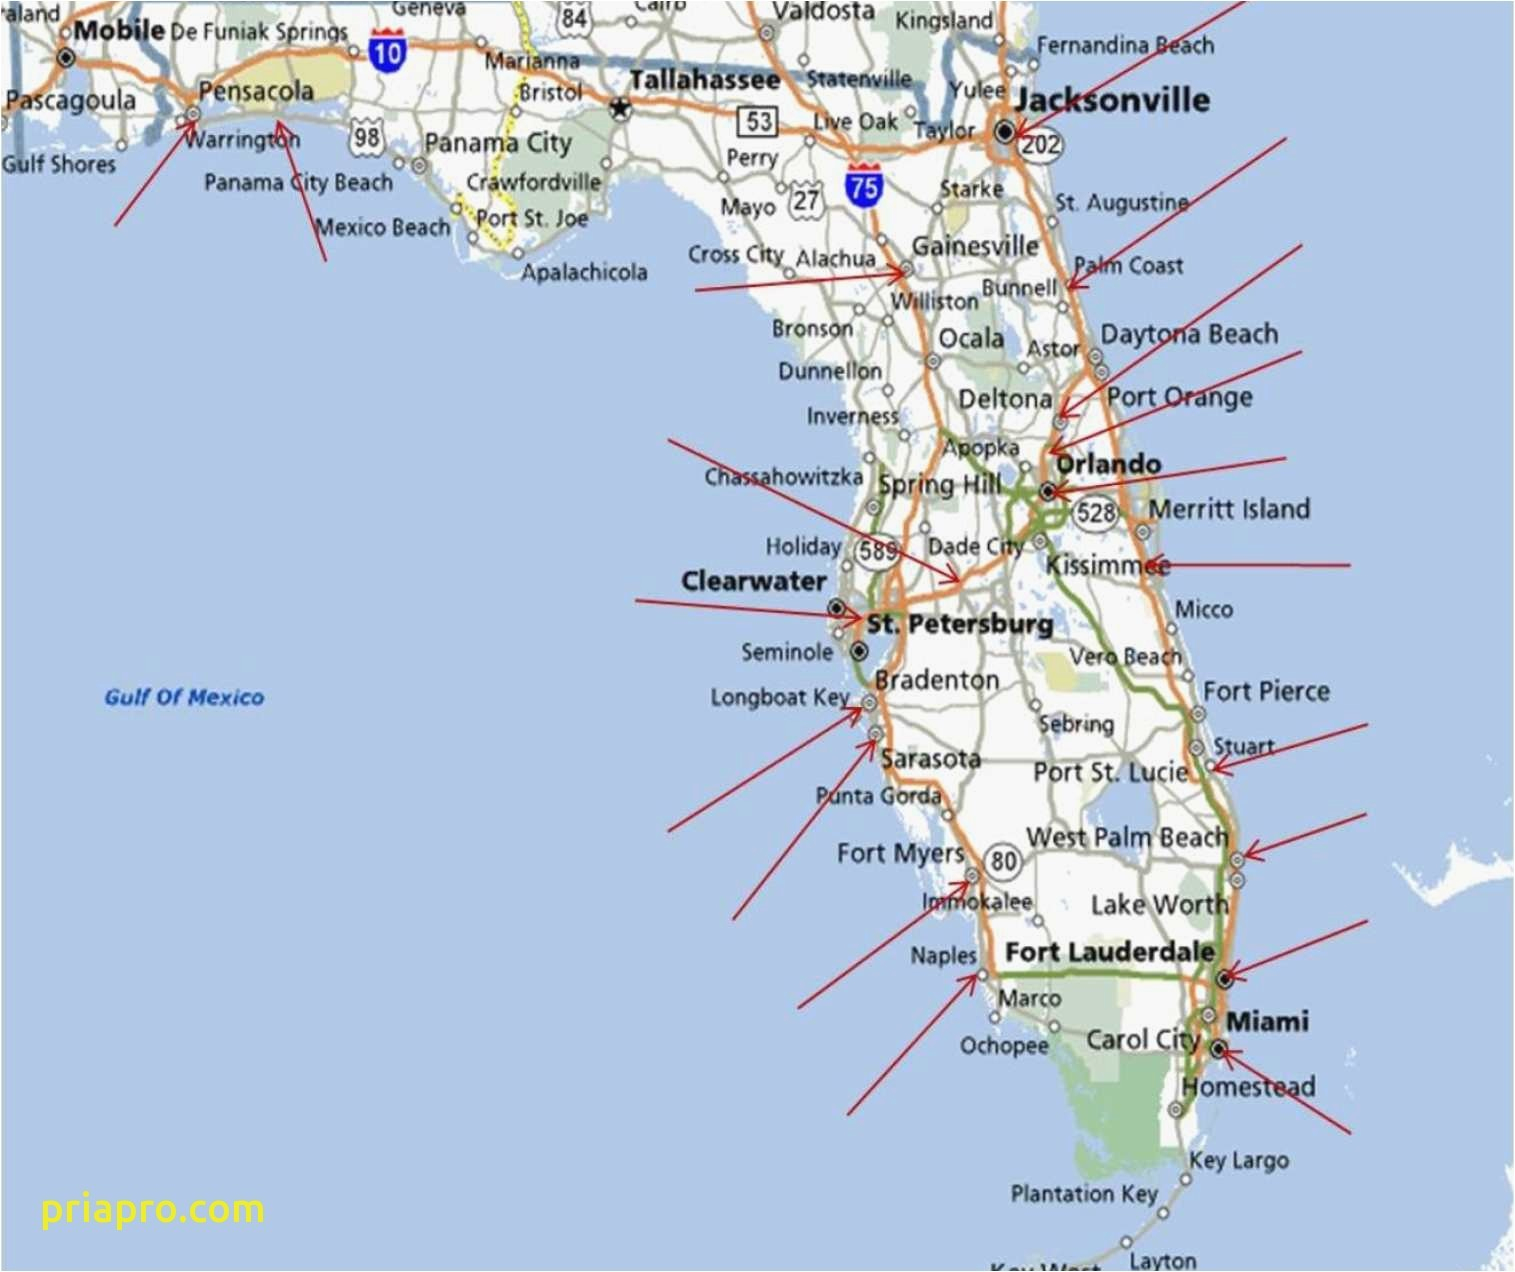 Category: Maps 29 | Zhangyedahuang - Map Of Eastern Florida Beaches